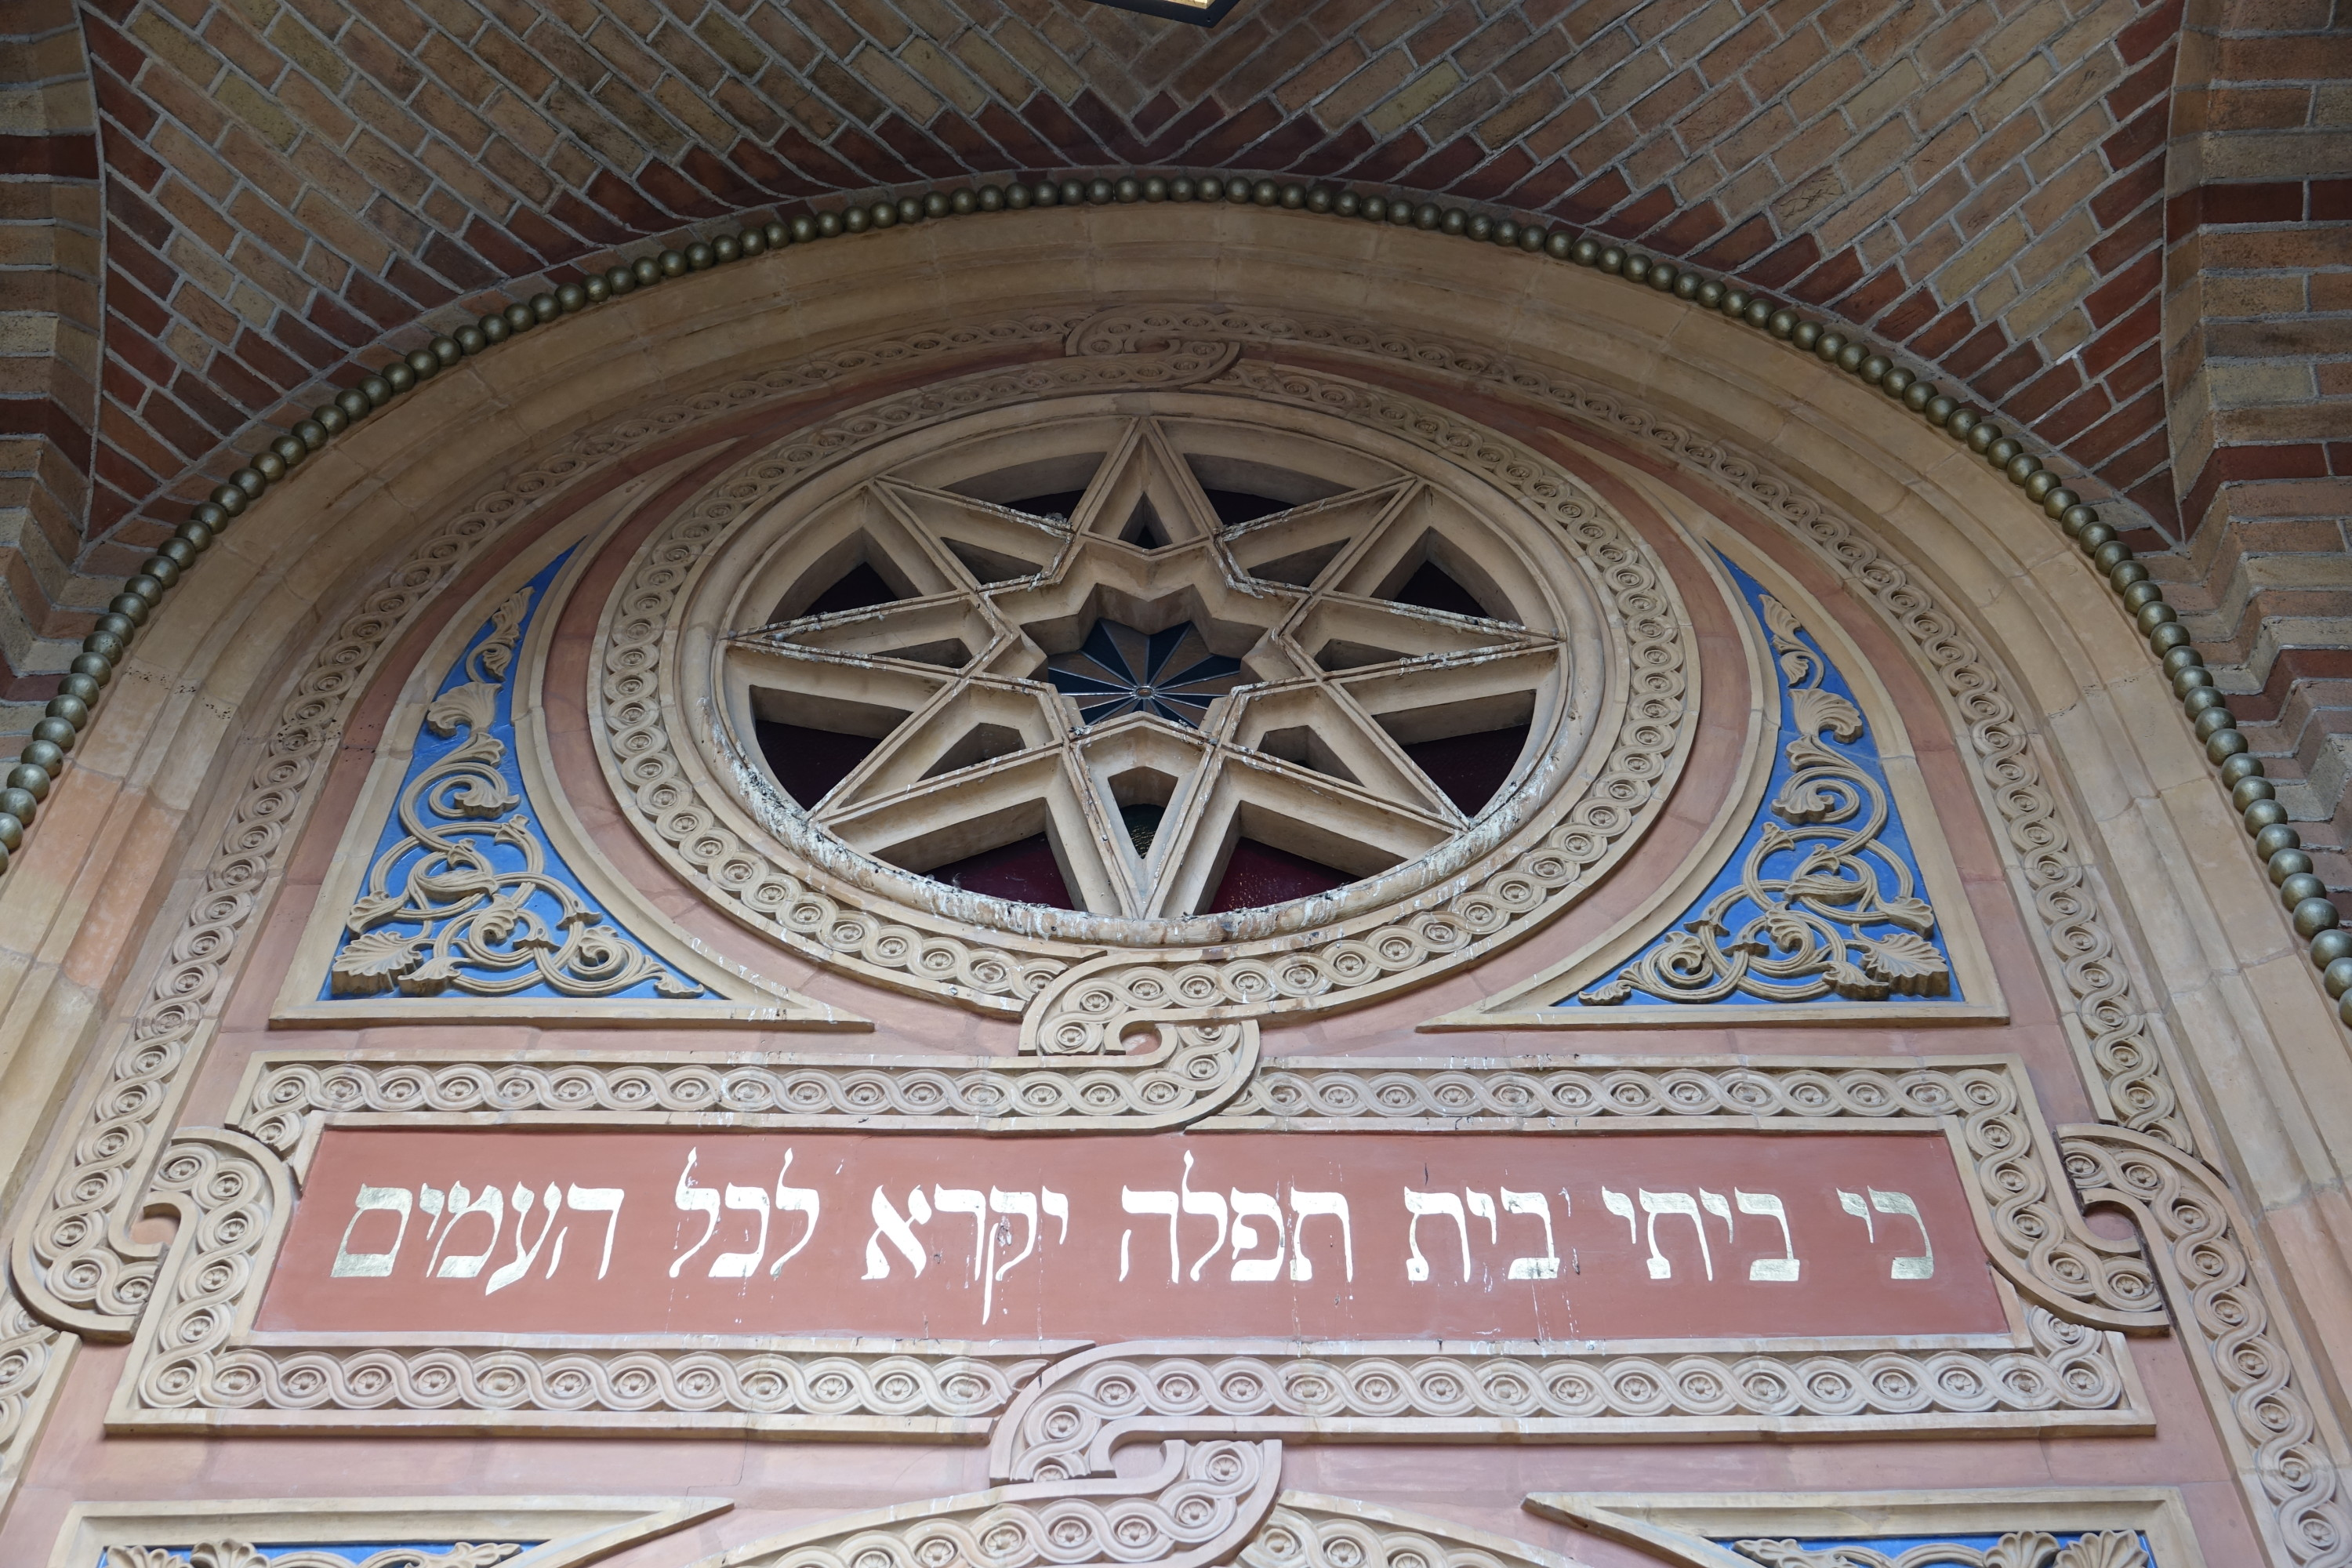 Choral Temple - Main active synagogue in Bucharest